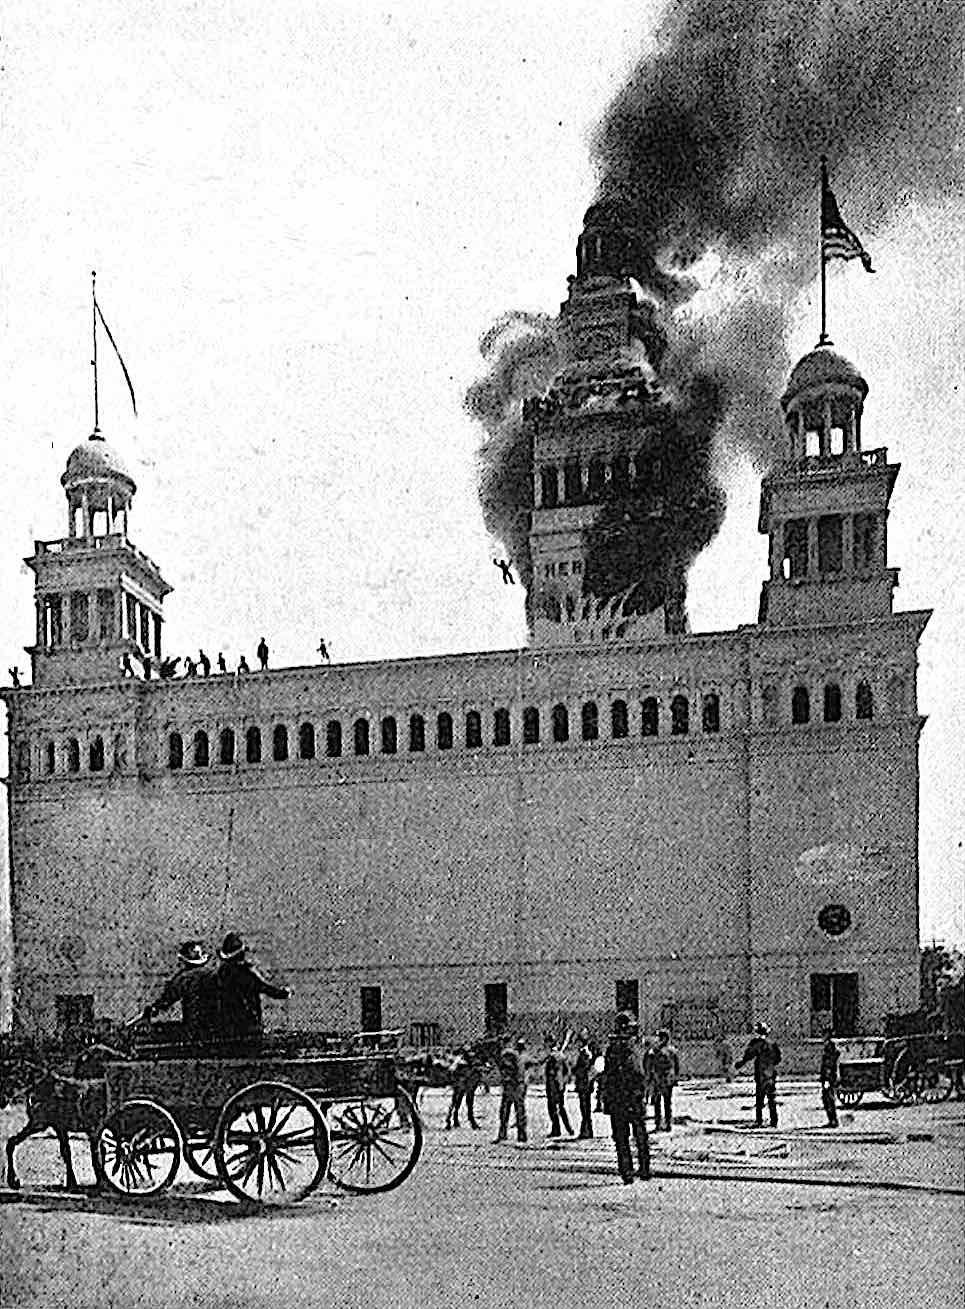 the 1893 World's Fair fire photograph, 16 dead in the Cold Storage Building